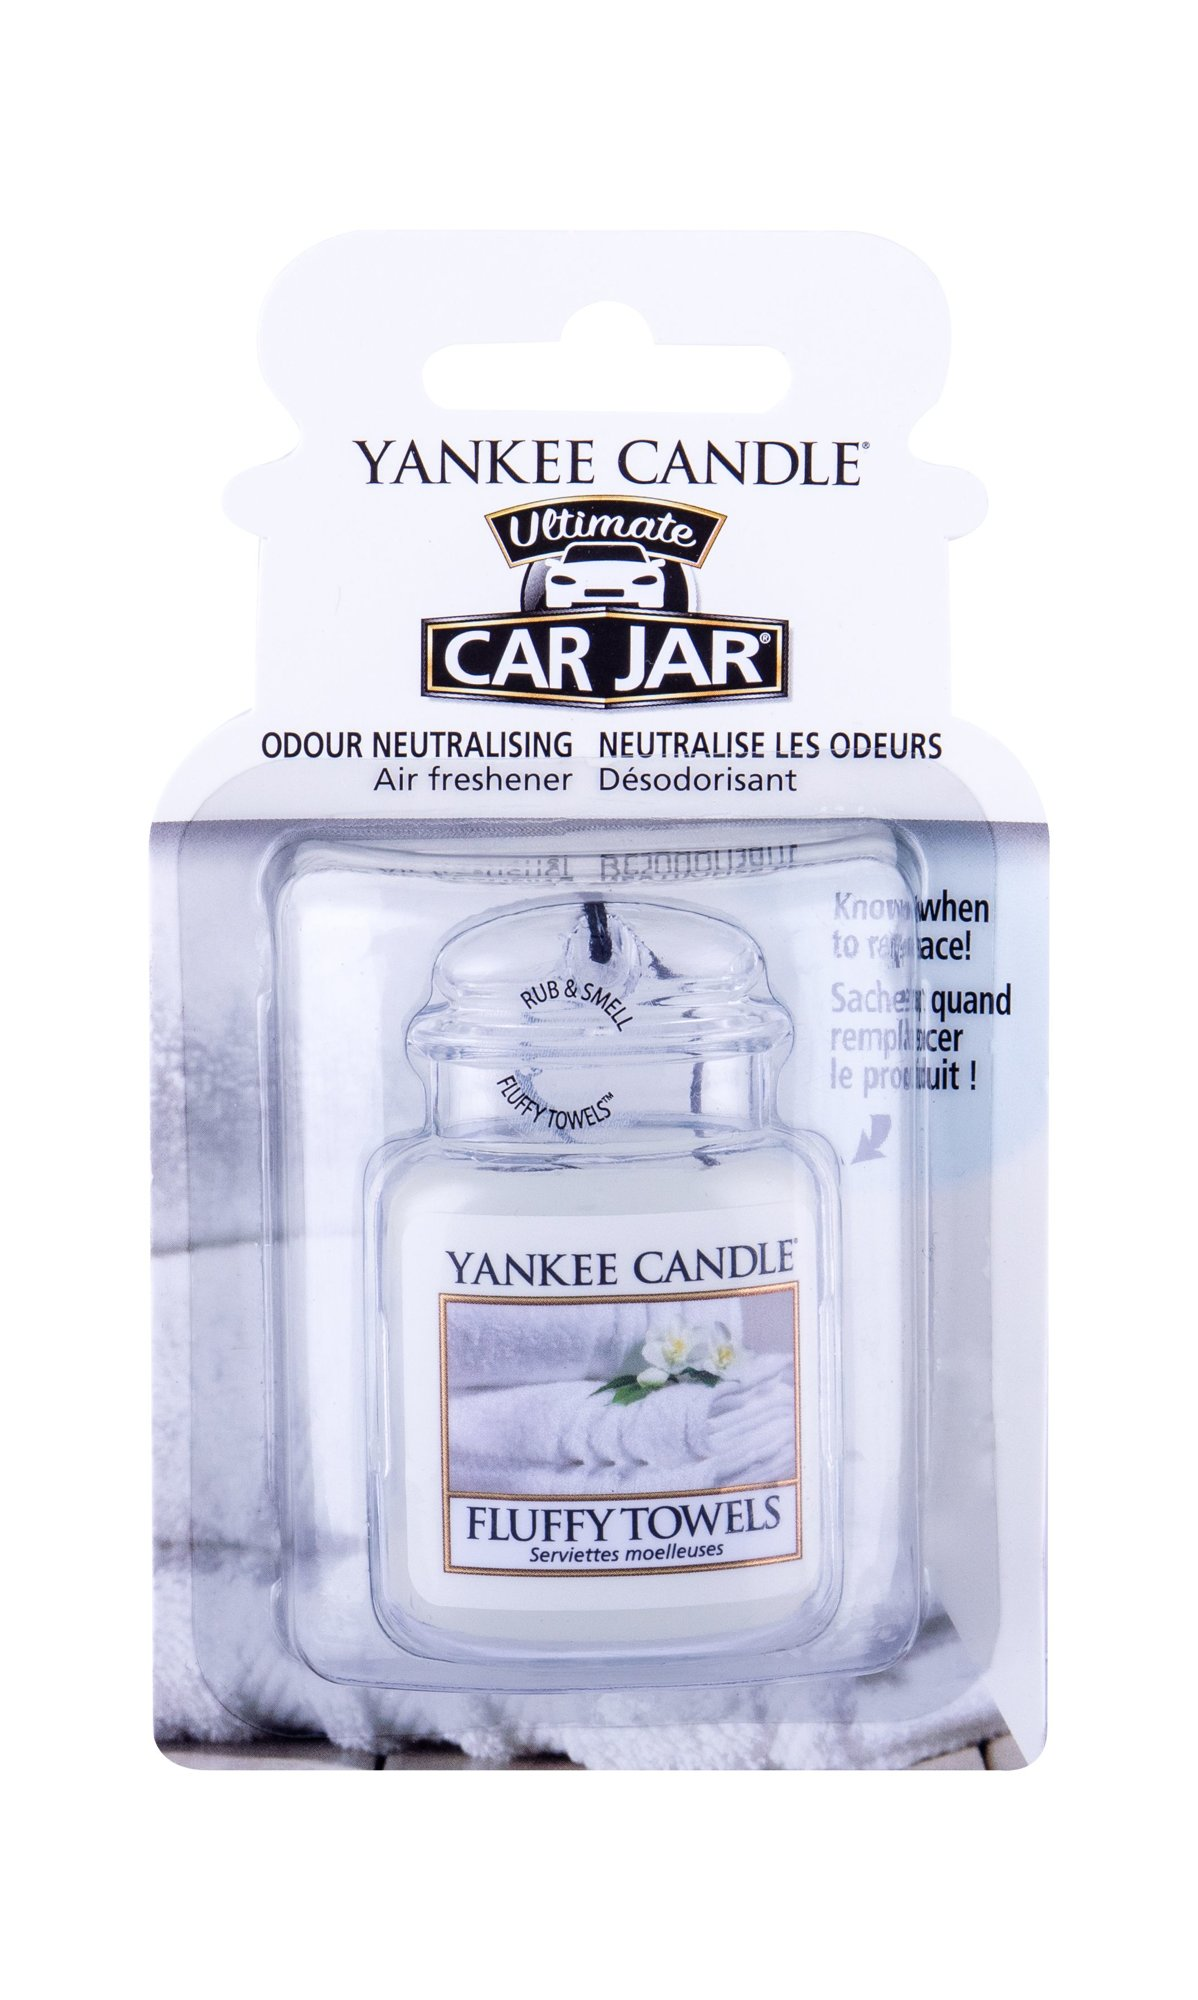 Yankee Candle Fluffy Towels Car Jar (Vůně do auta, U, 1 ks)